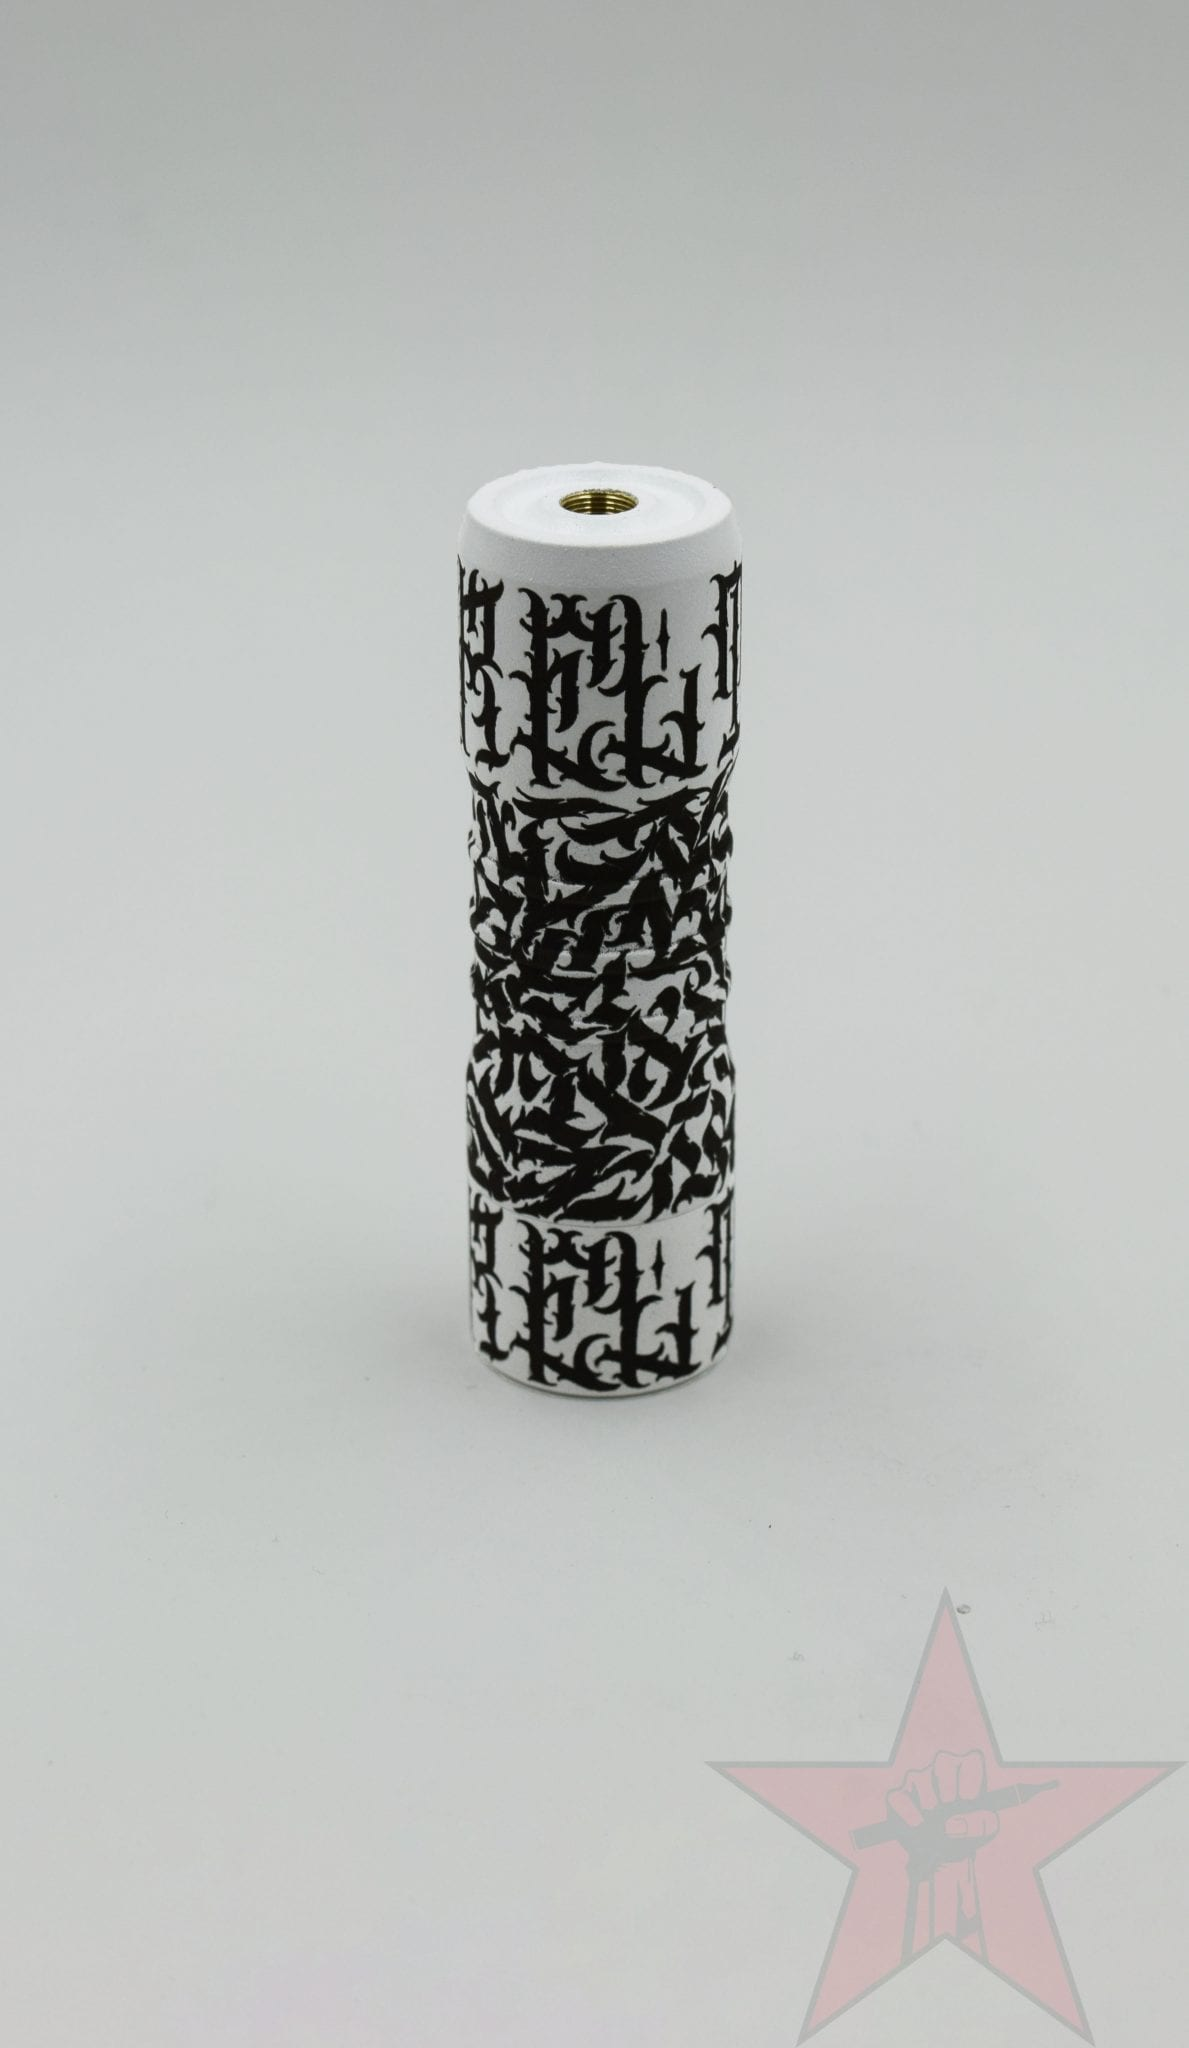 Viva La Cloud - El Thunder Artist Edition Mech Mod - White